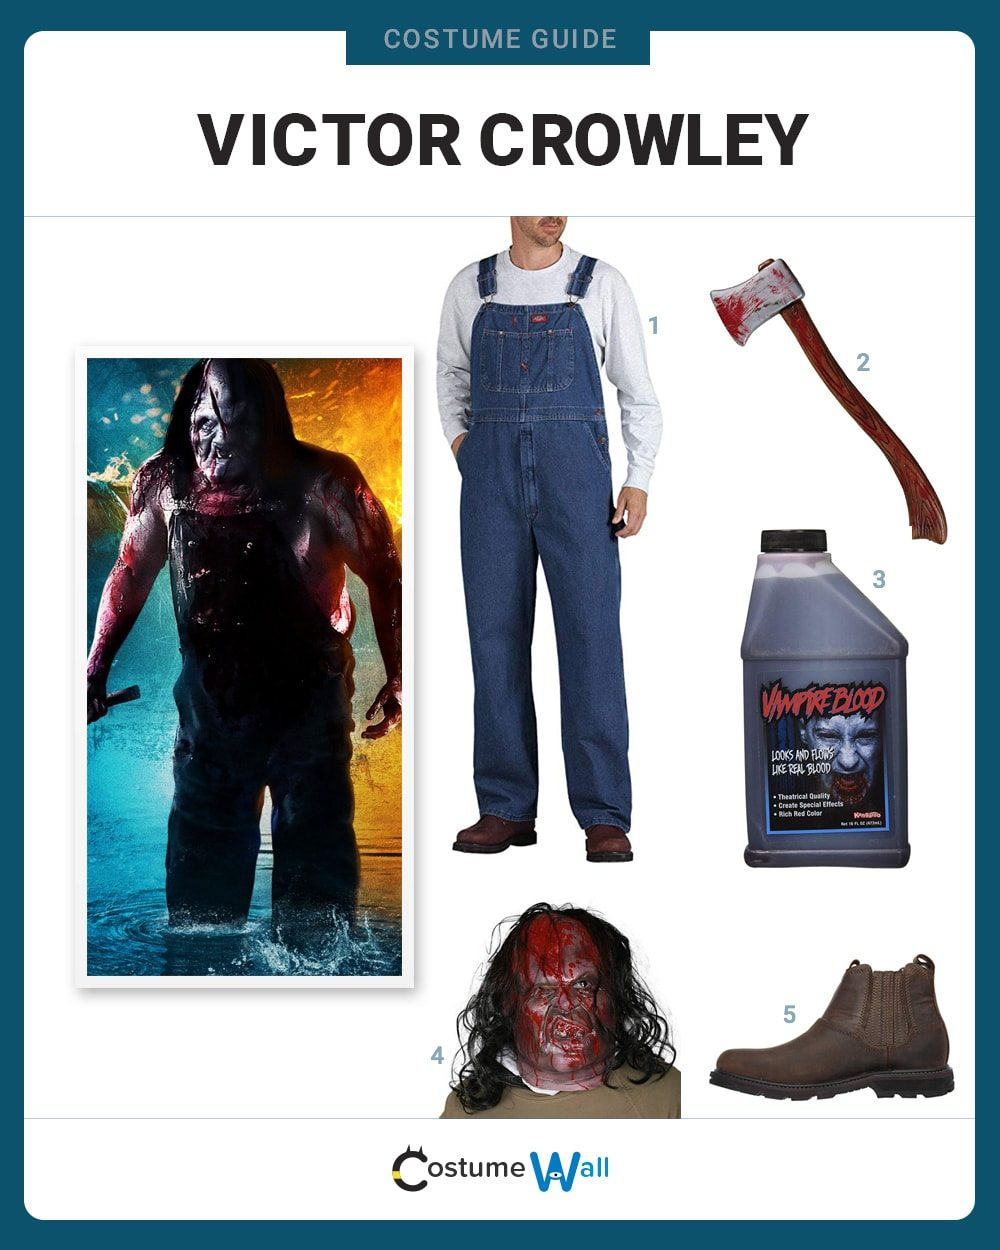 Victor Crowley Costume Guide